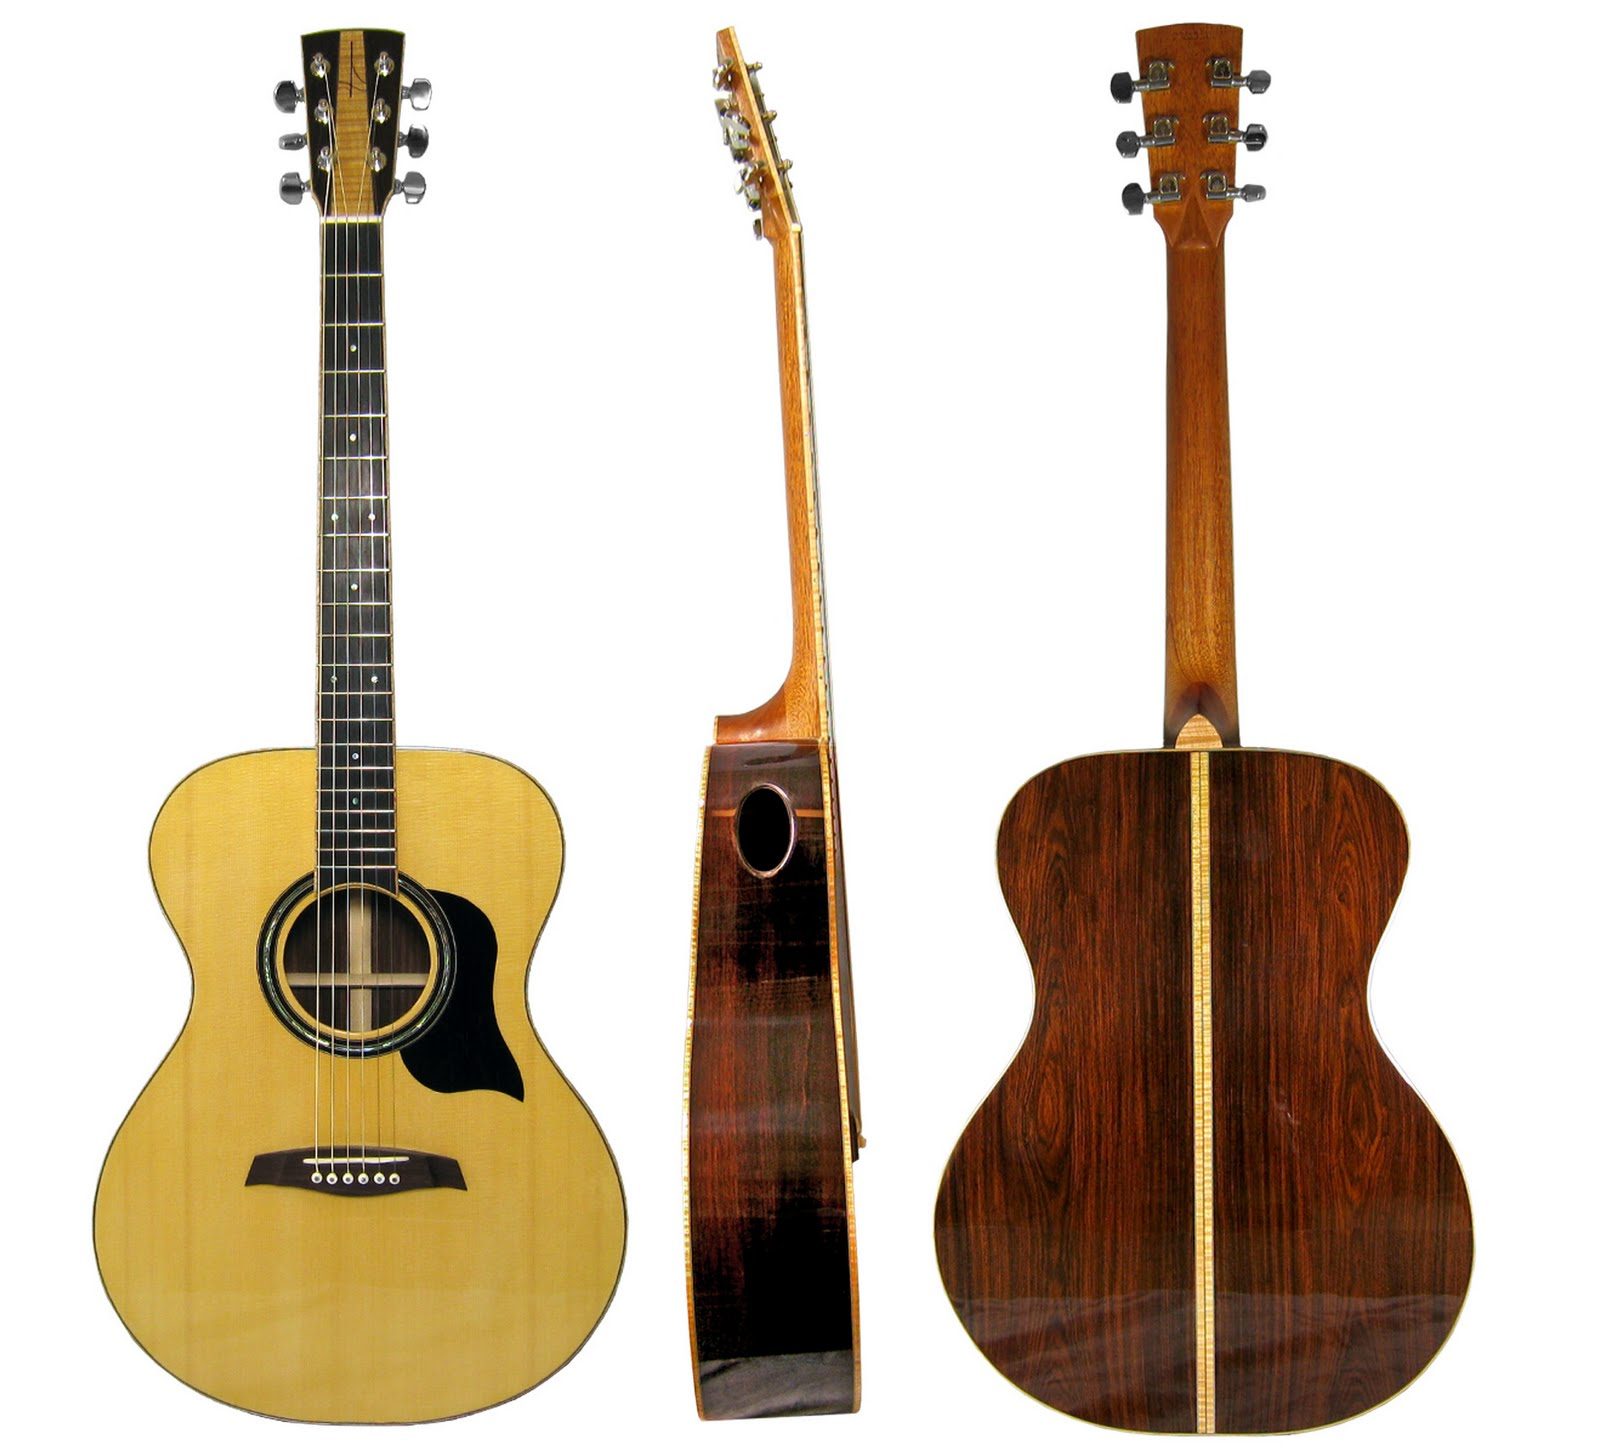 Building an Acoustic Guitar in your Kitchen